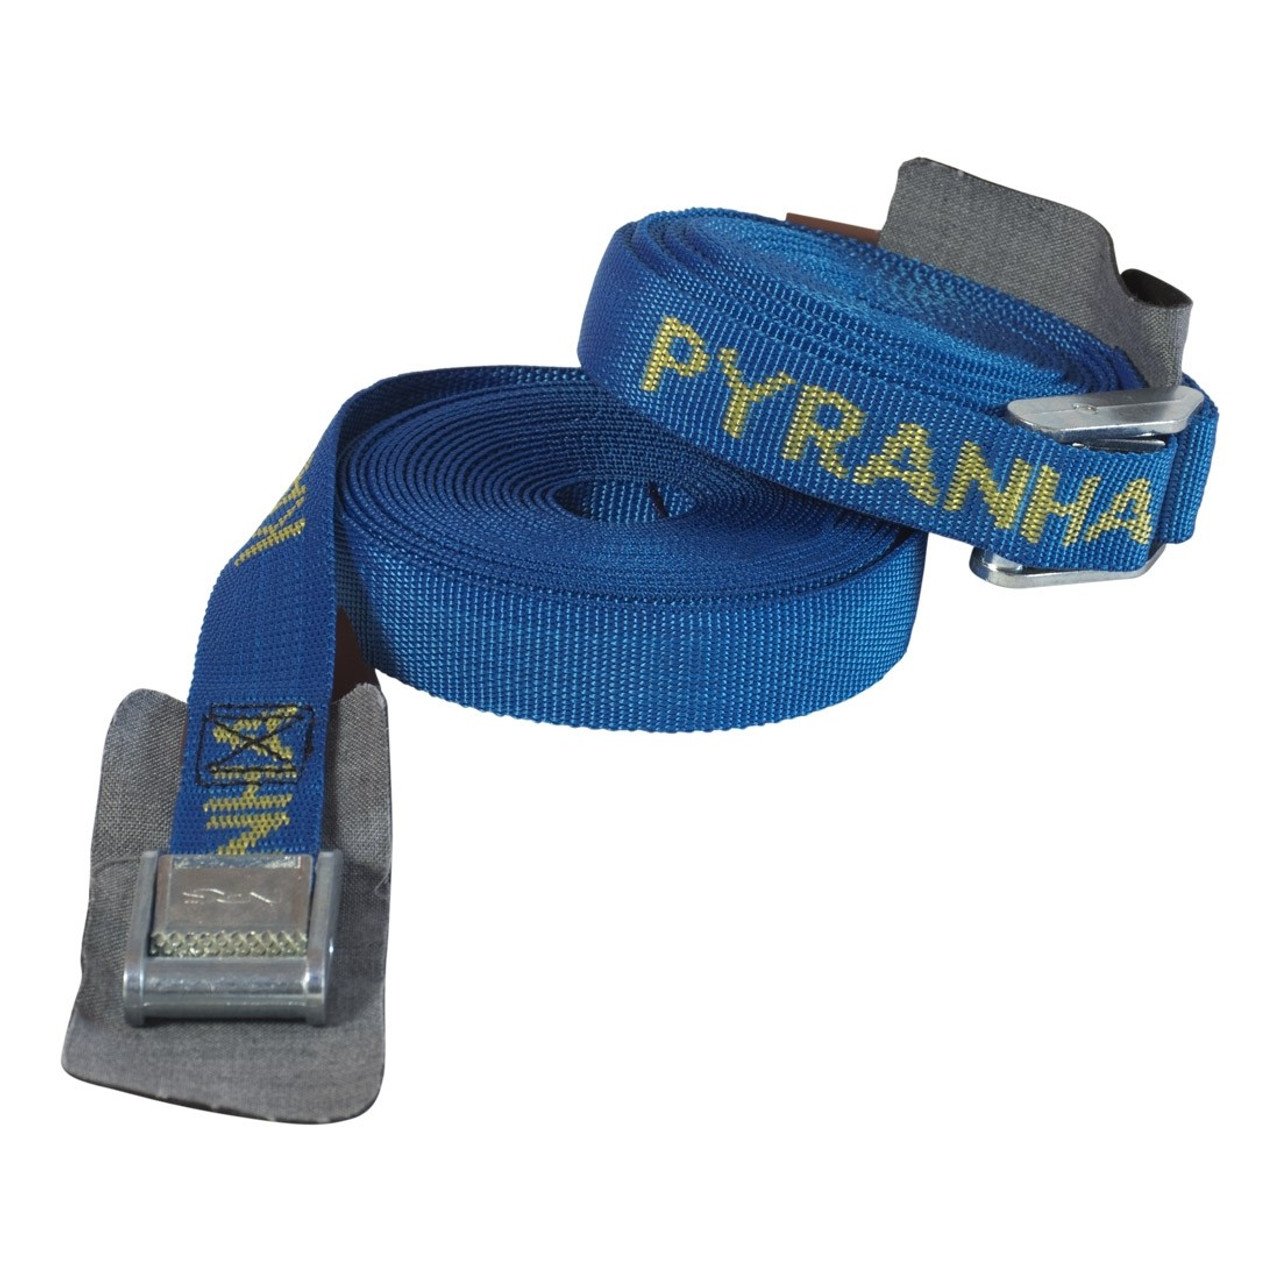 Pyranha Kayak, Canoe, SUP tie down roof straps, 5M. Sold in pairs.